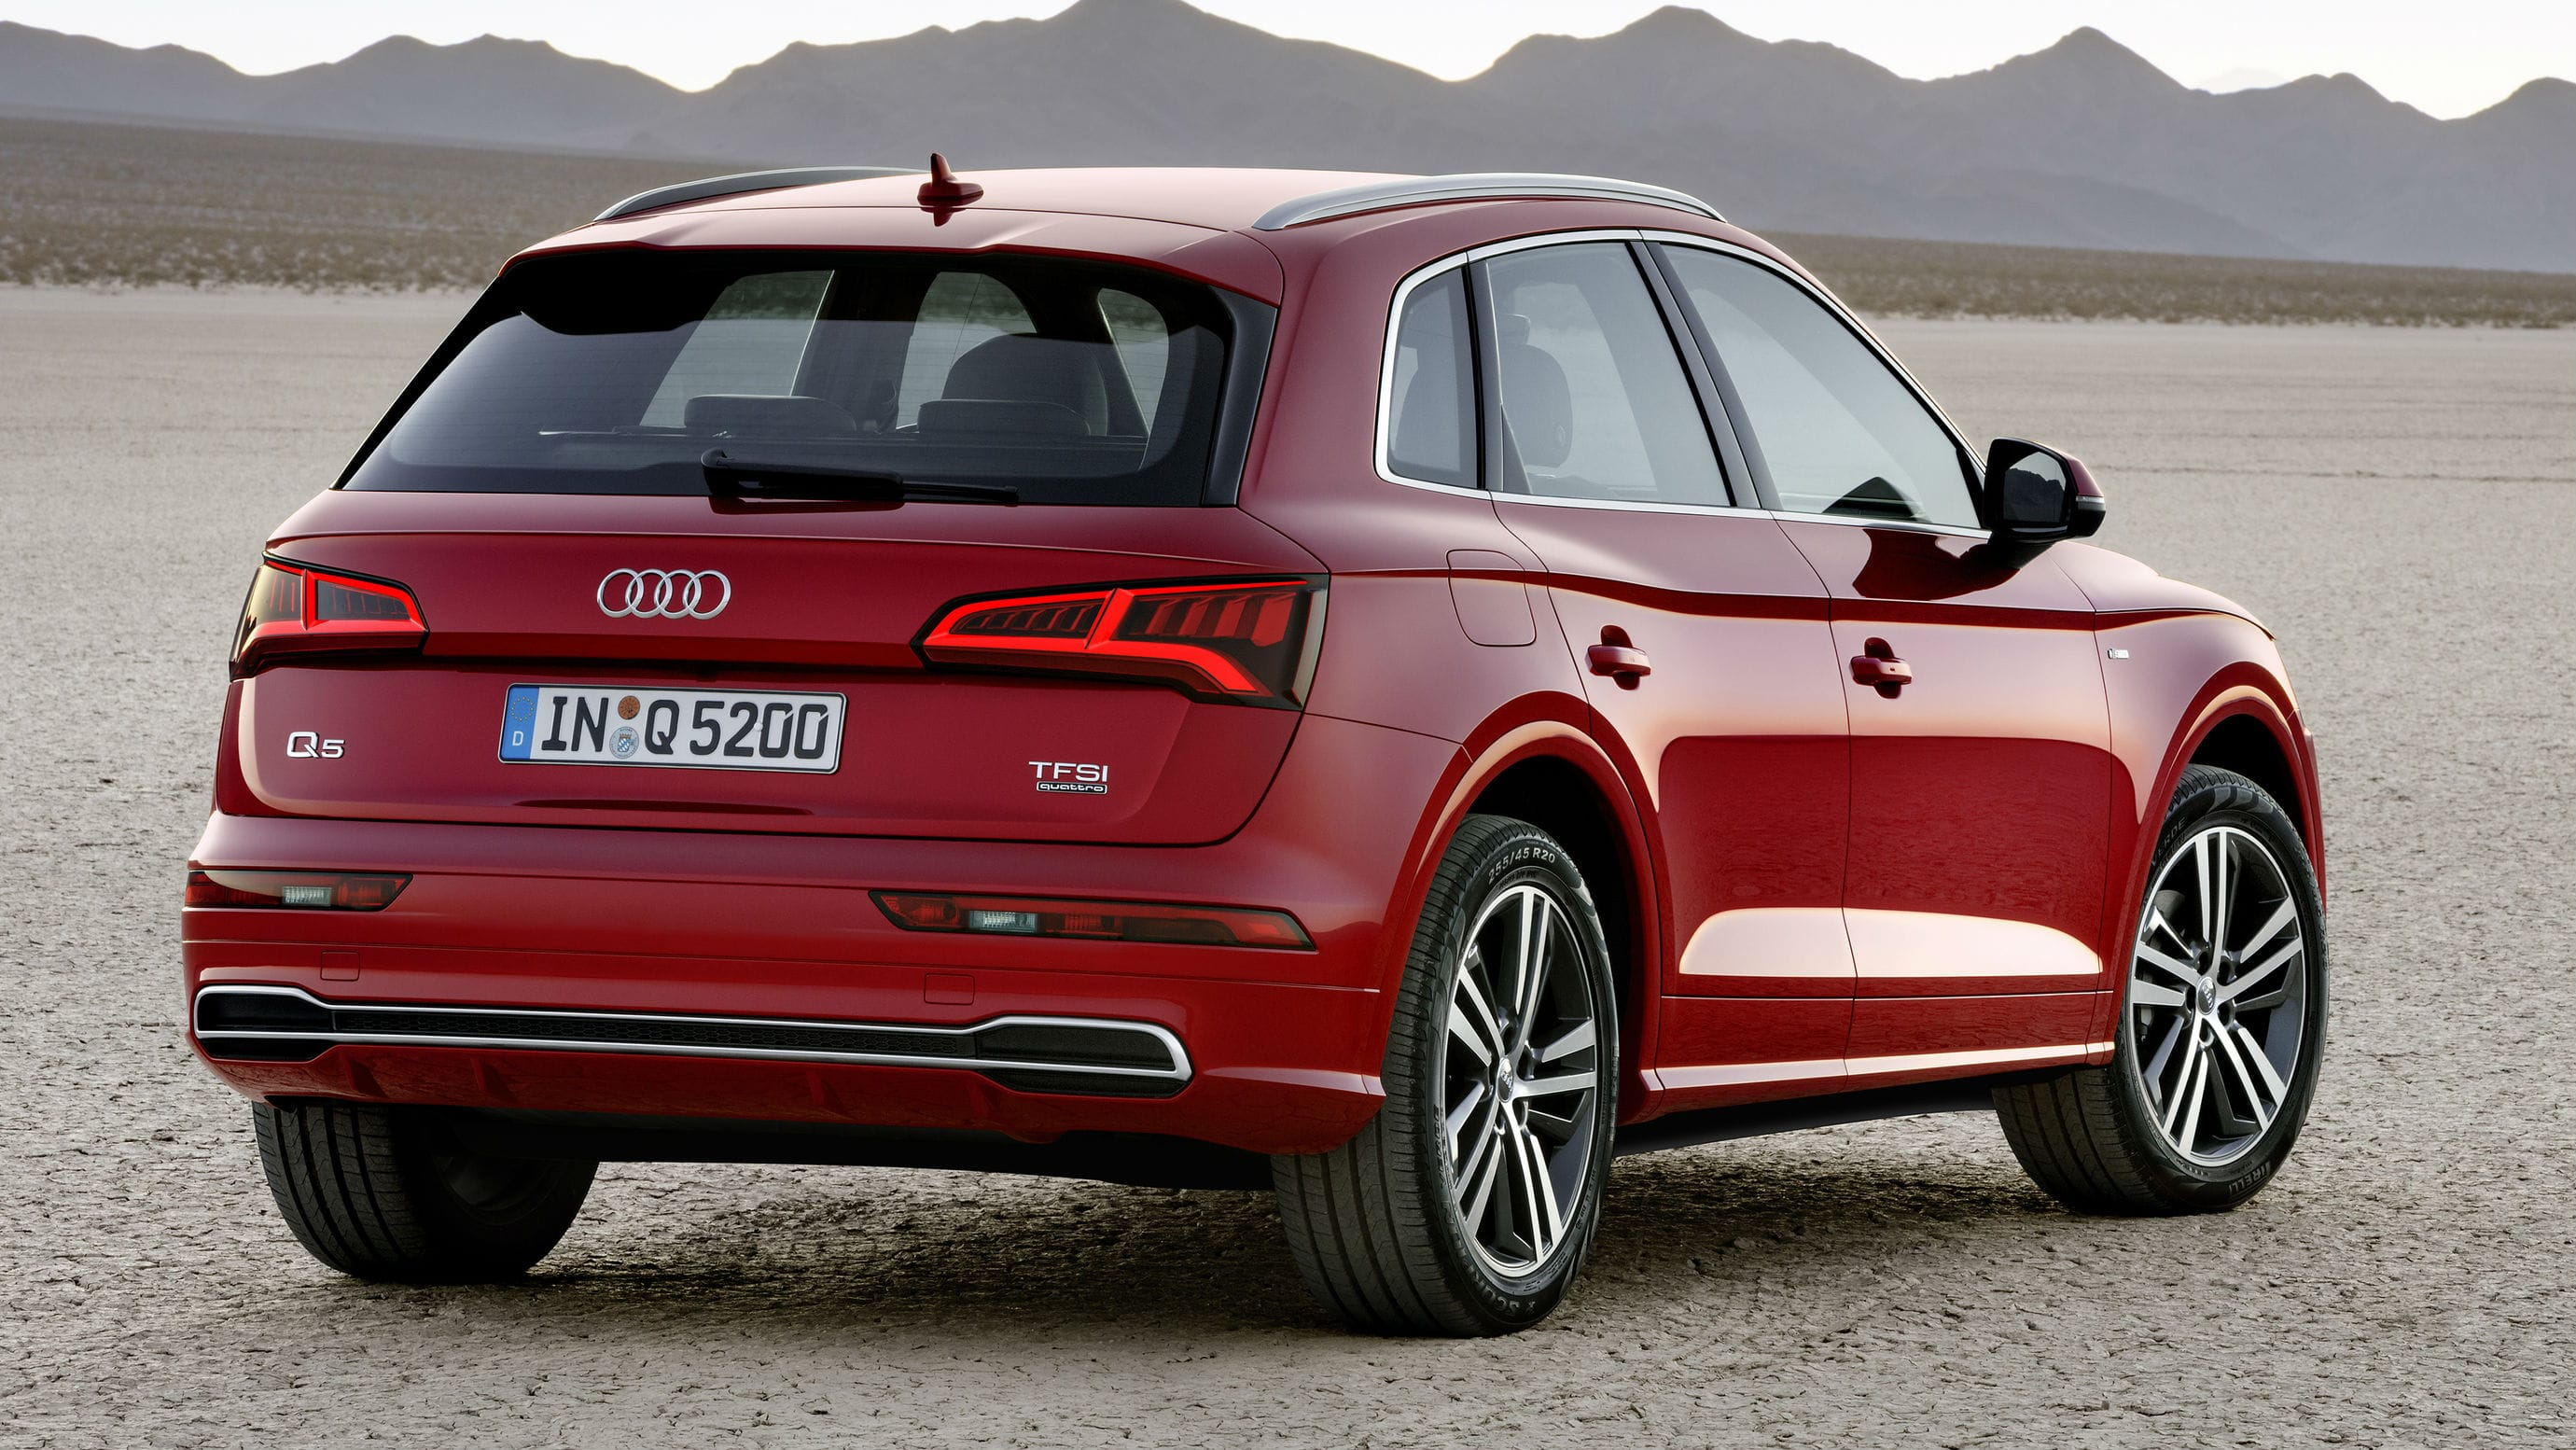 Audi Q5 II Background